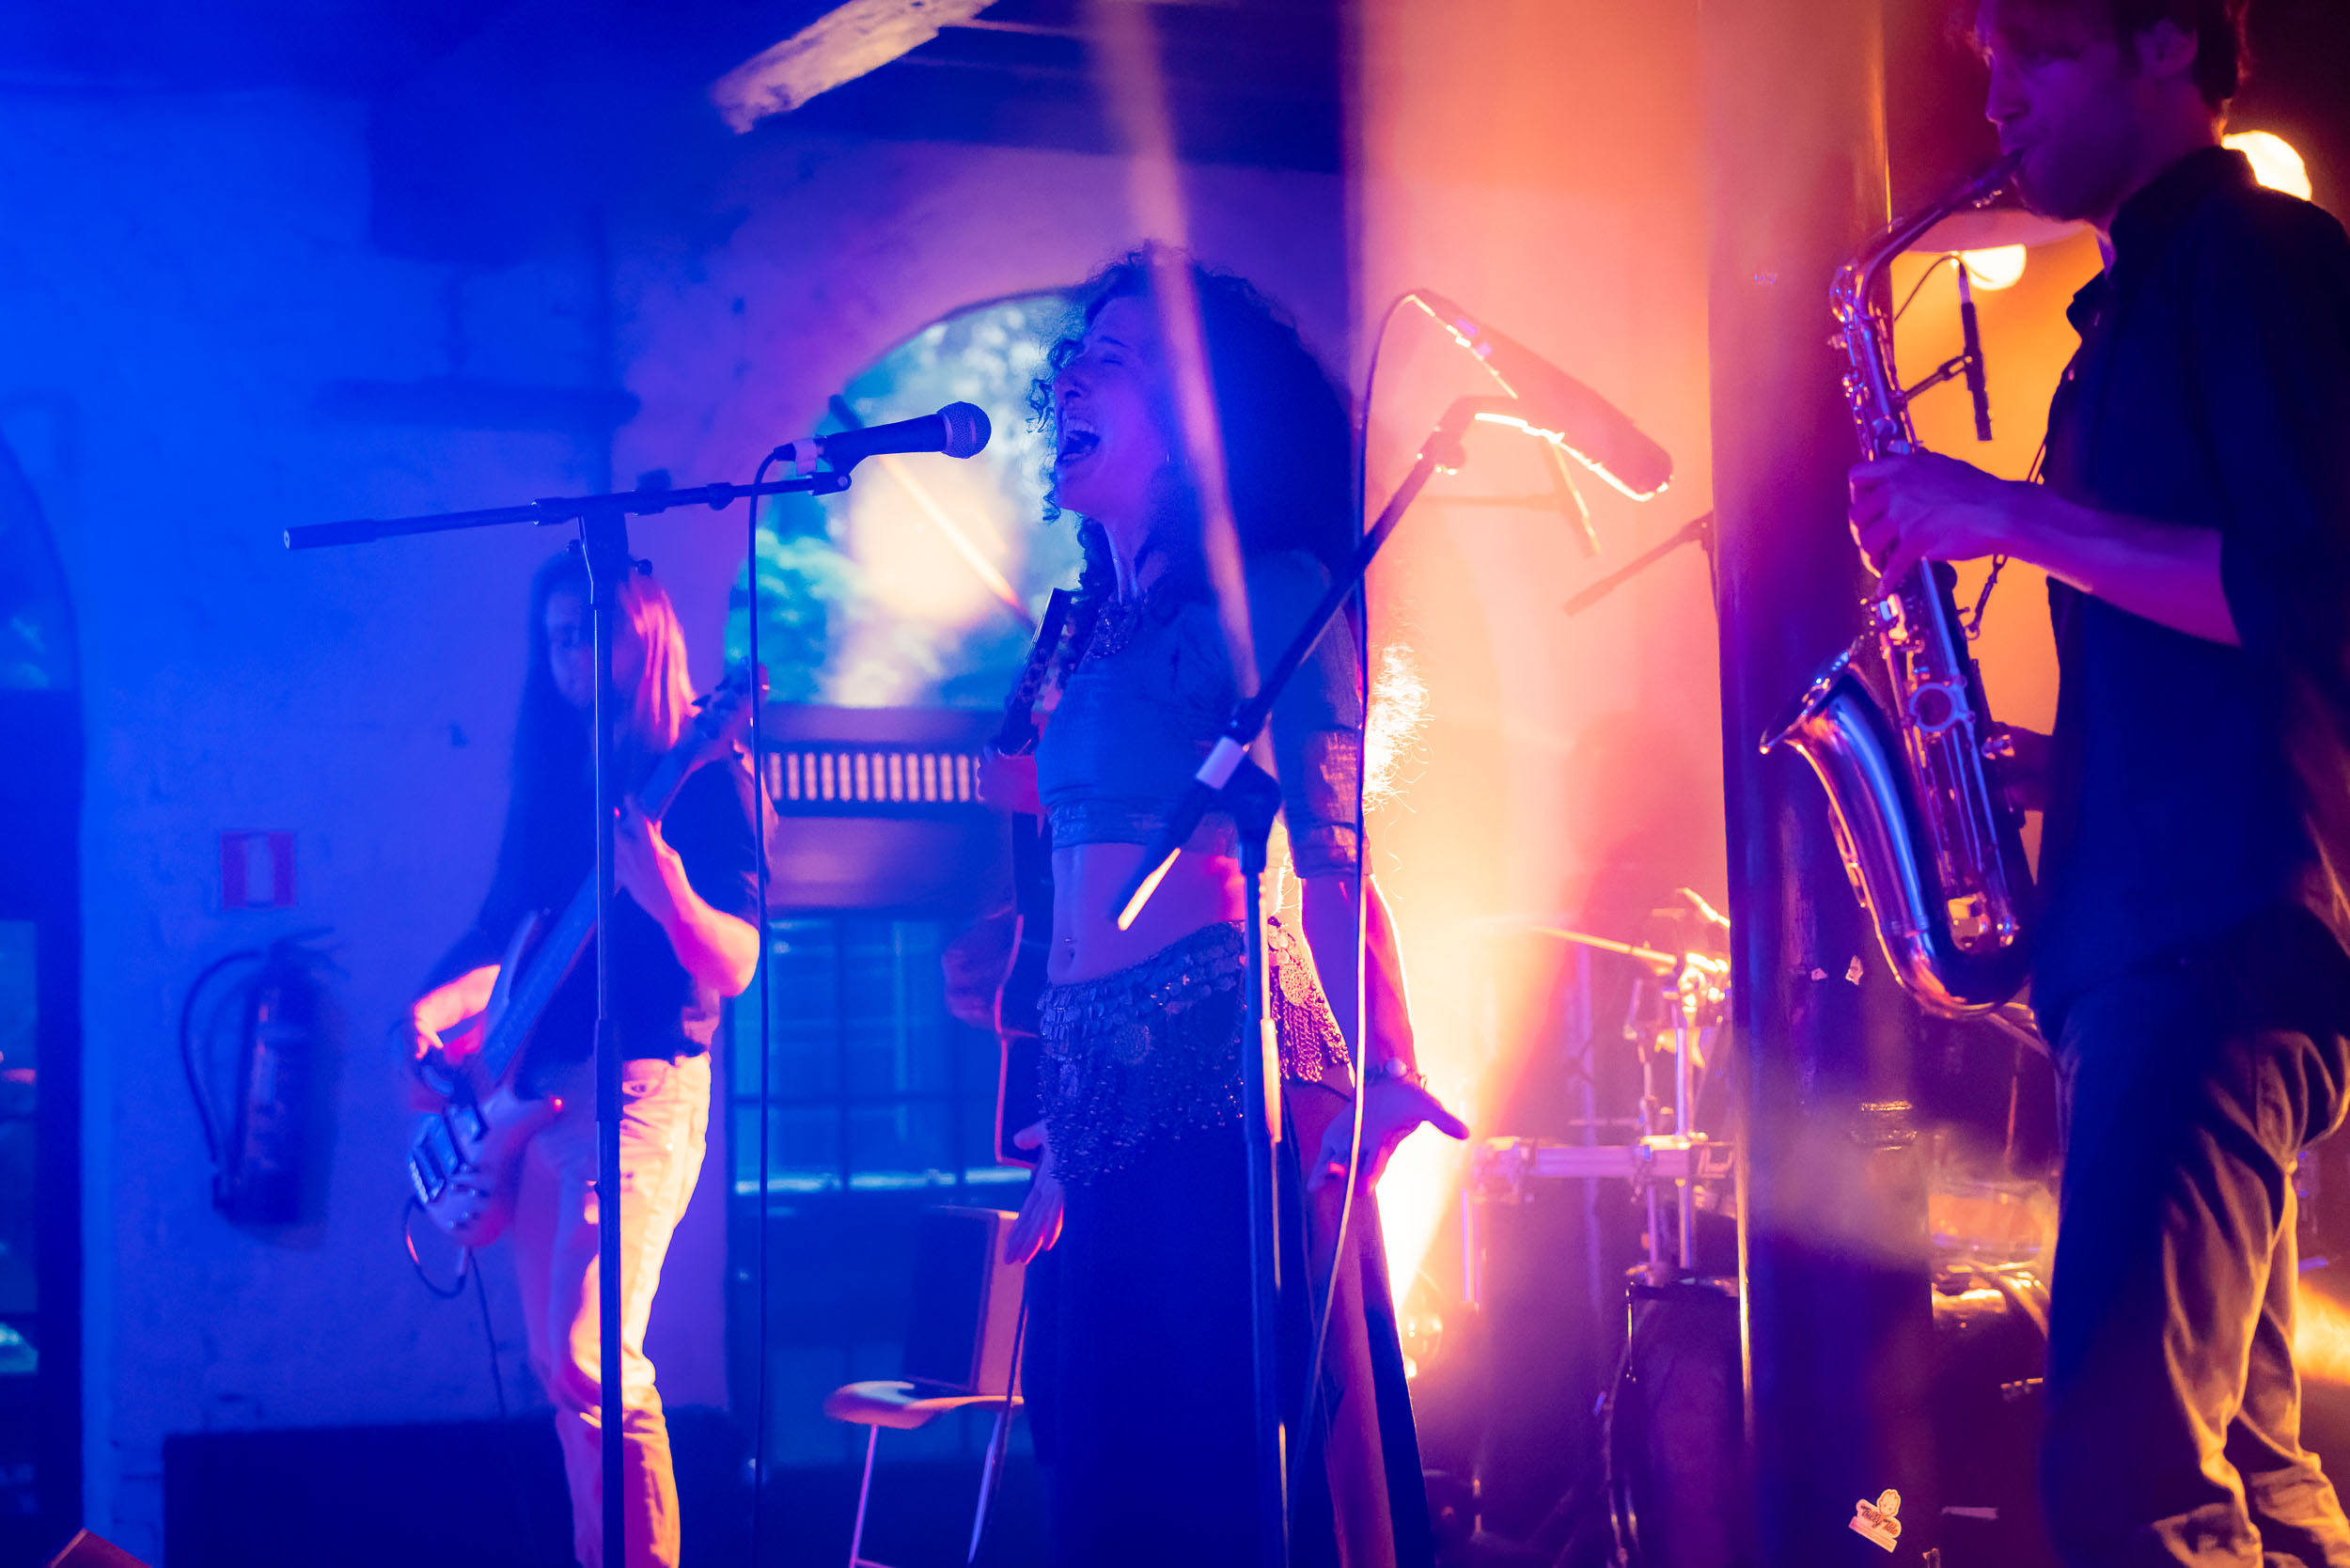 Concert at Pianofabriek. Photo taken by a photographer from Brus